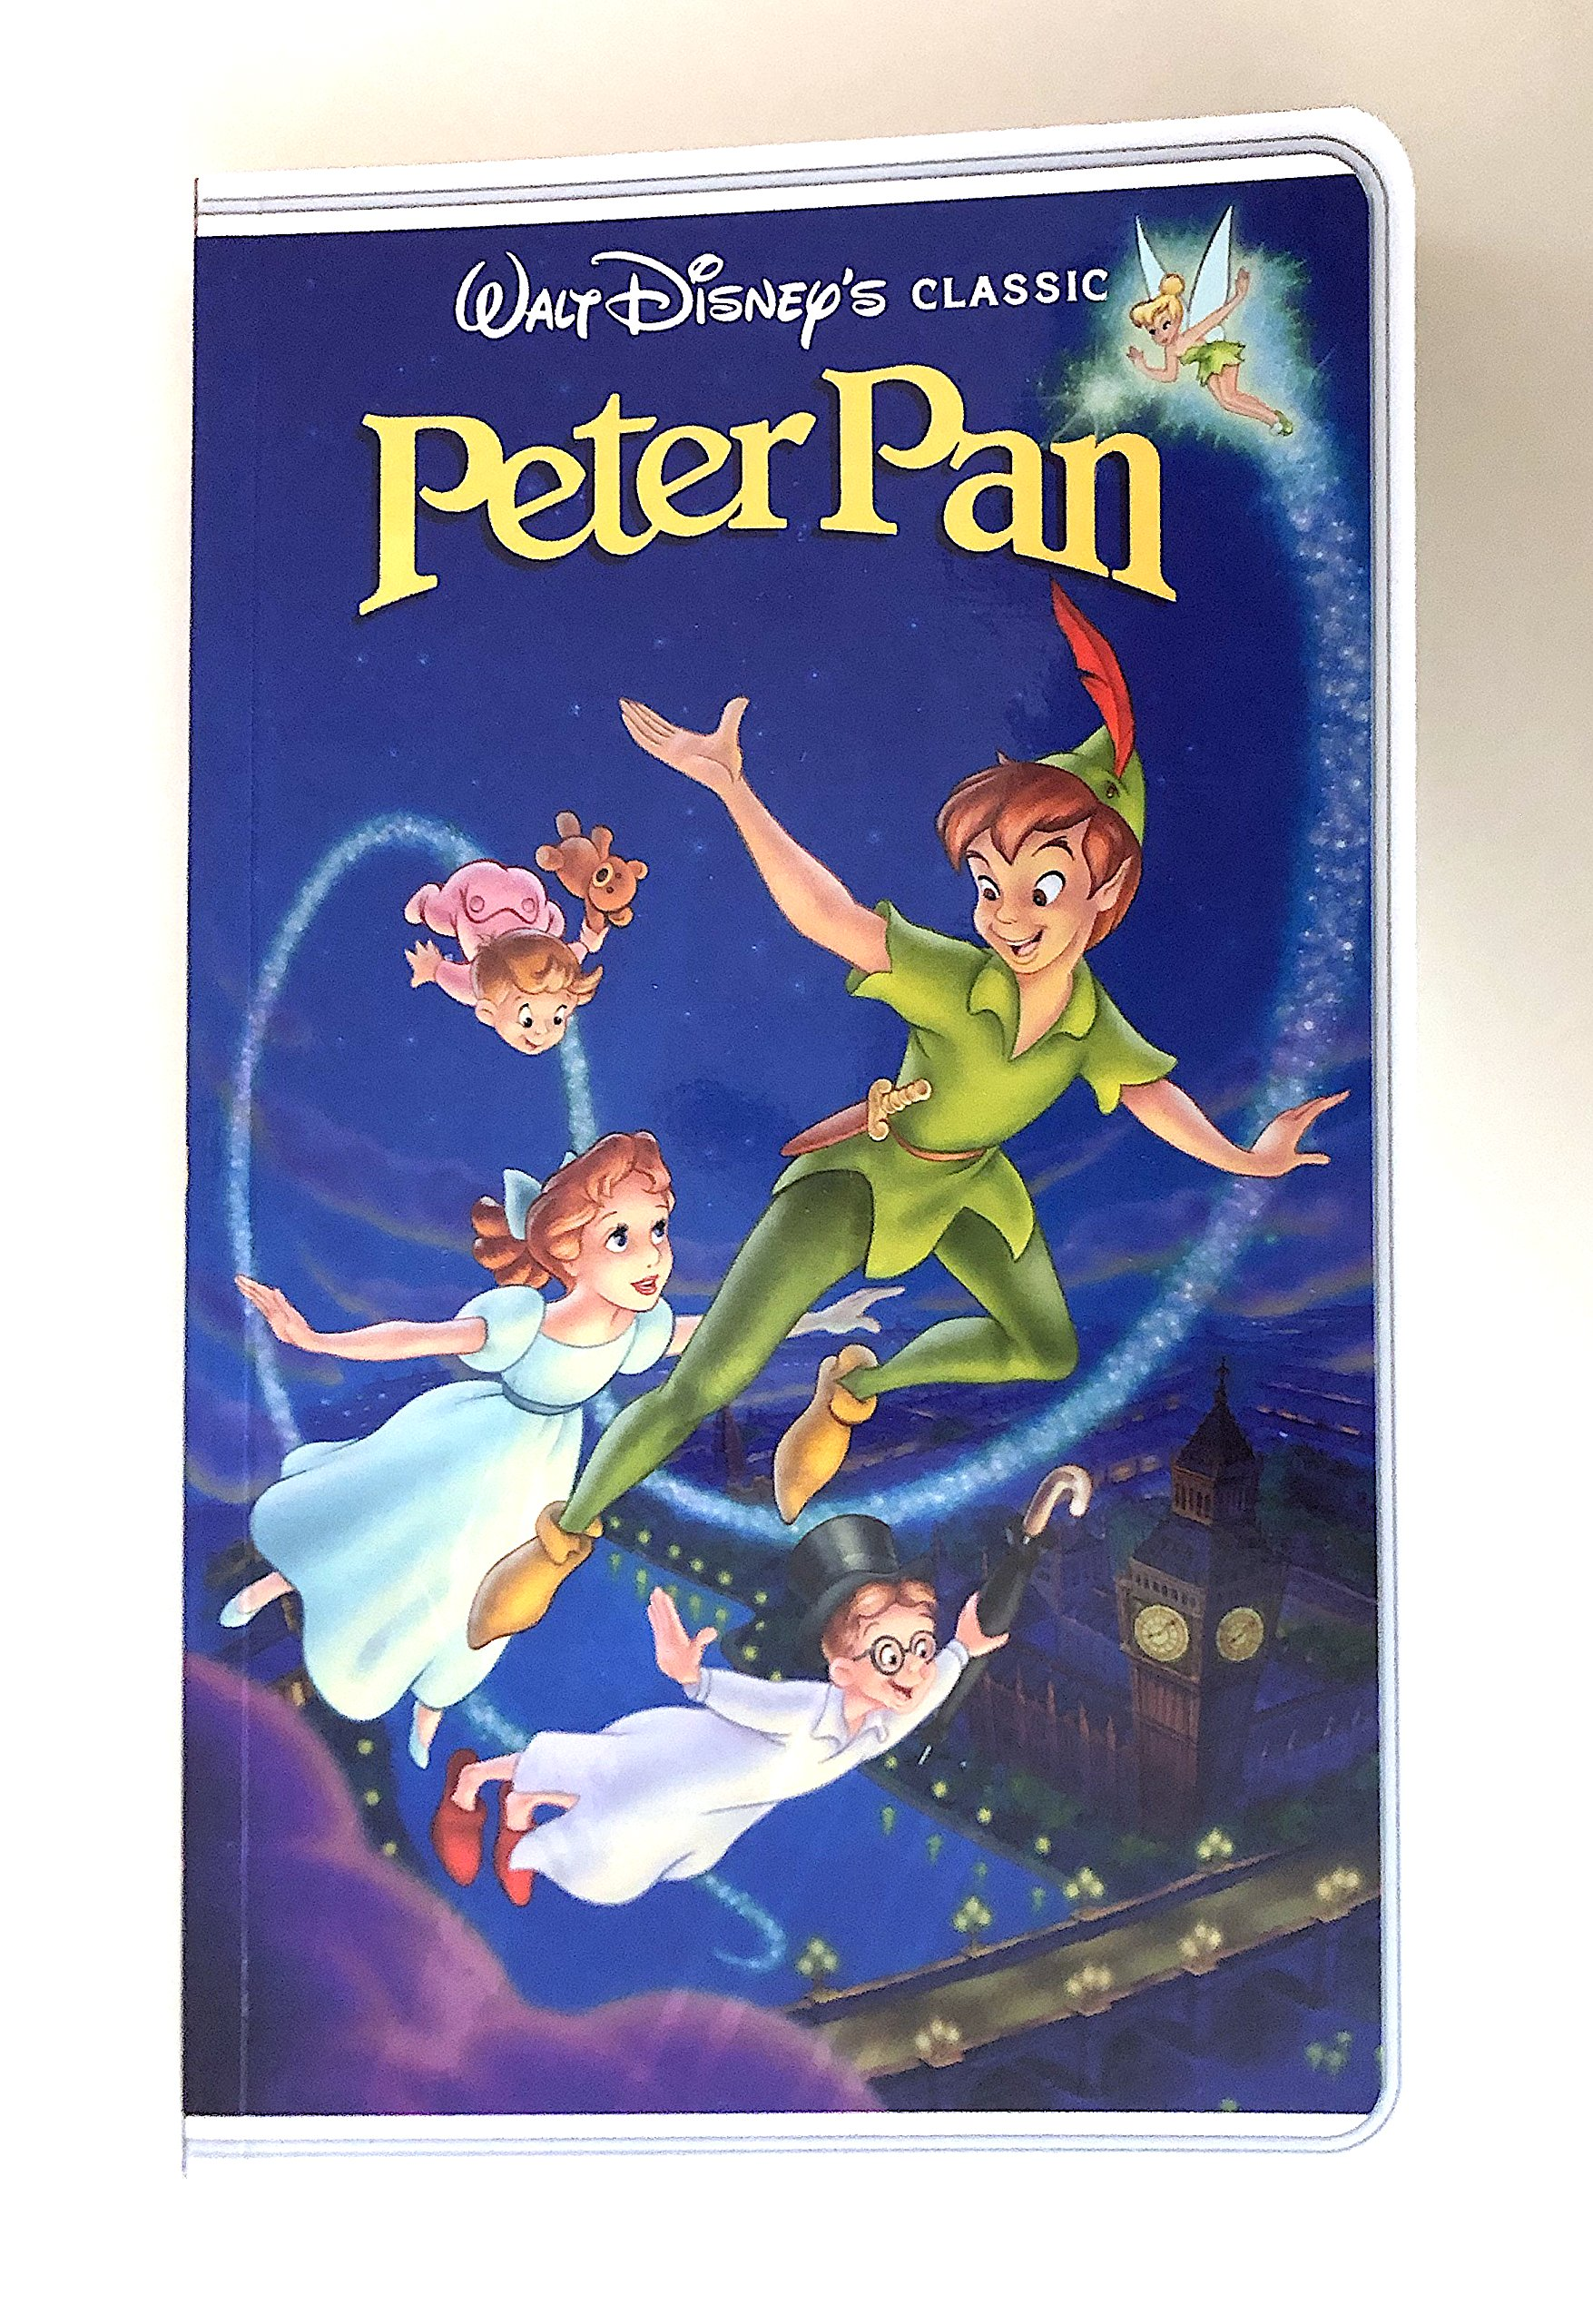 Disney Parks Peter Pan VHS Cover Blank Book Journal Diary